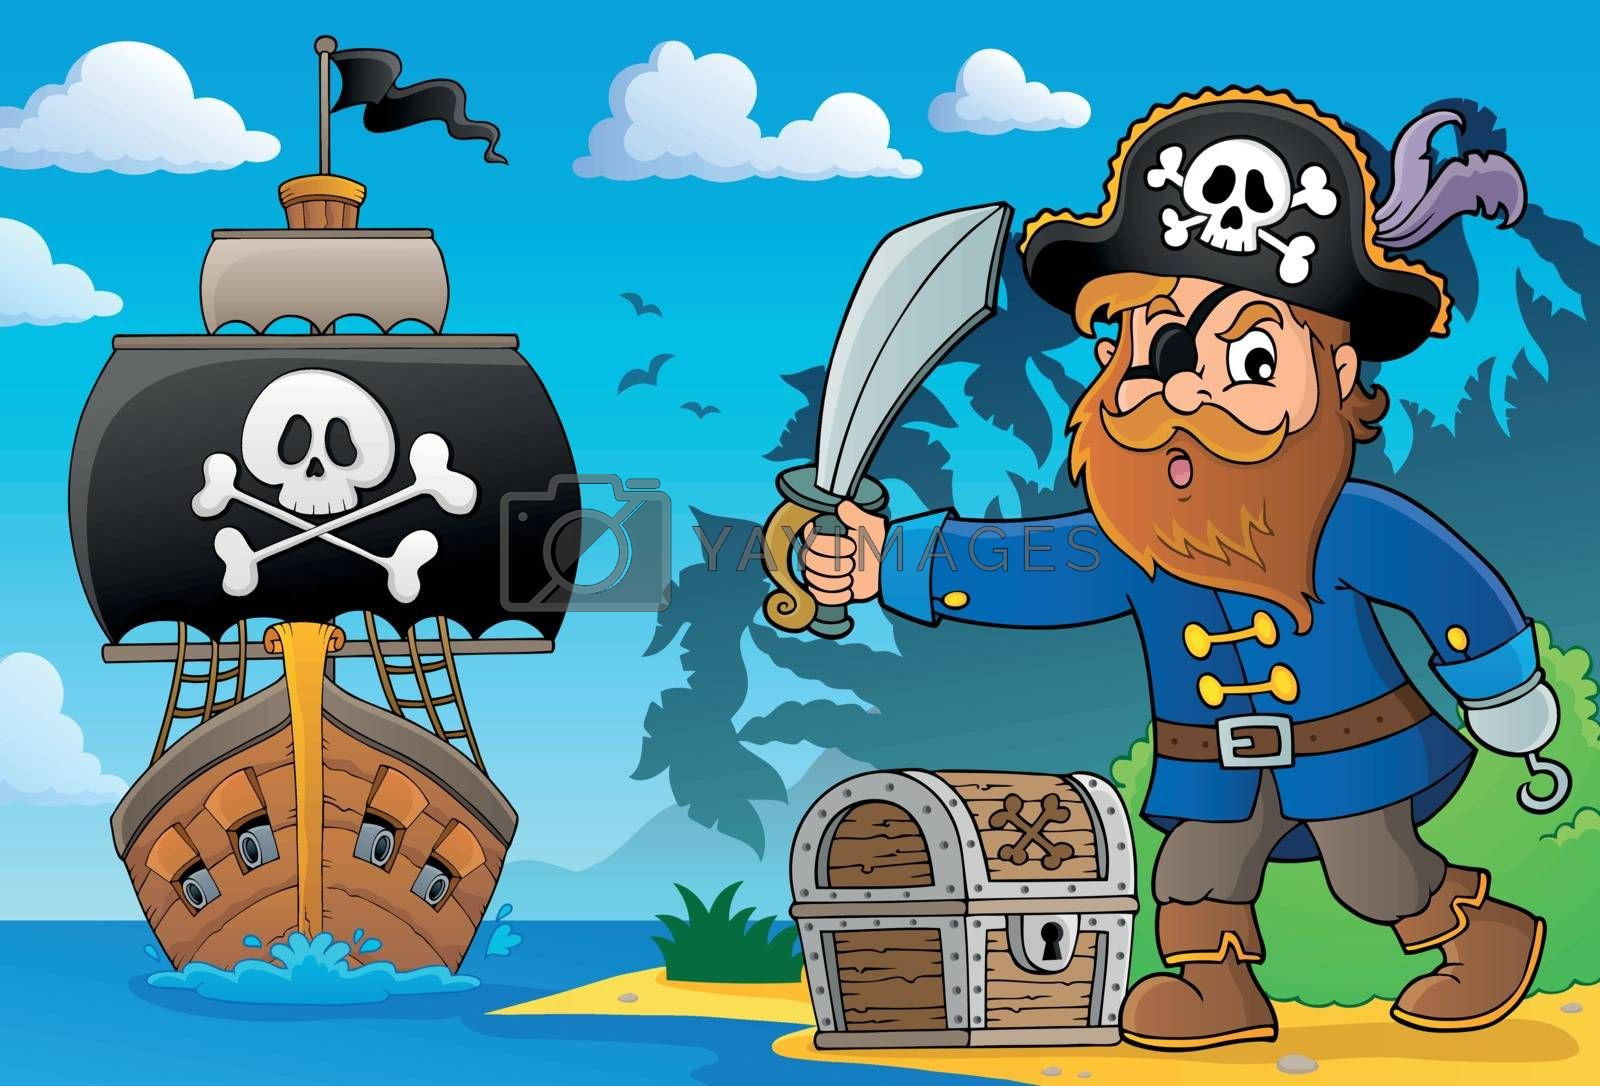 Pirate holding sabre theme 2 - eps10 vector illustration.